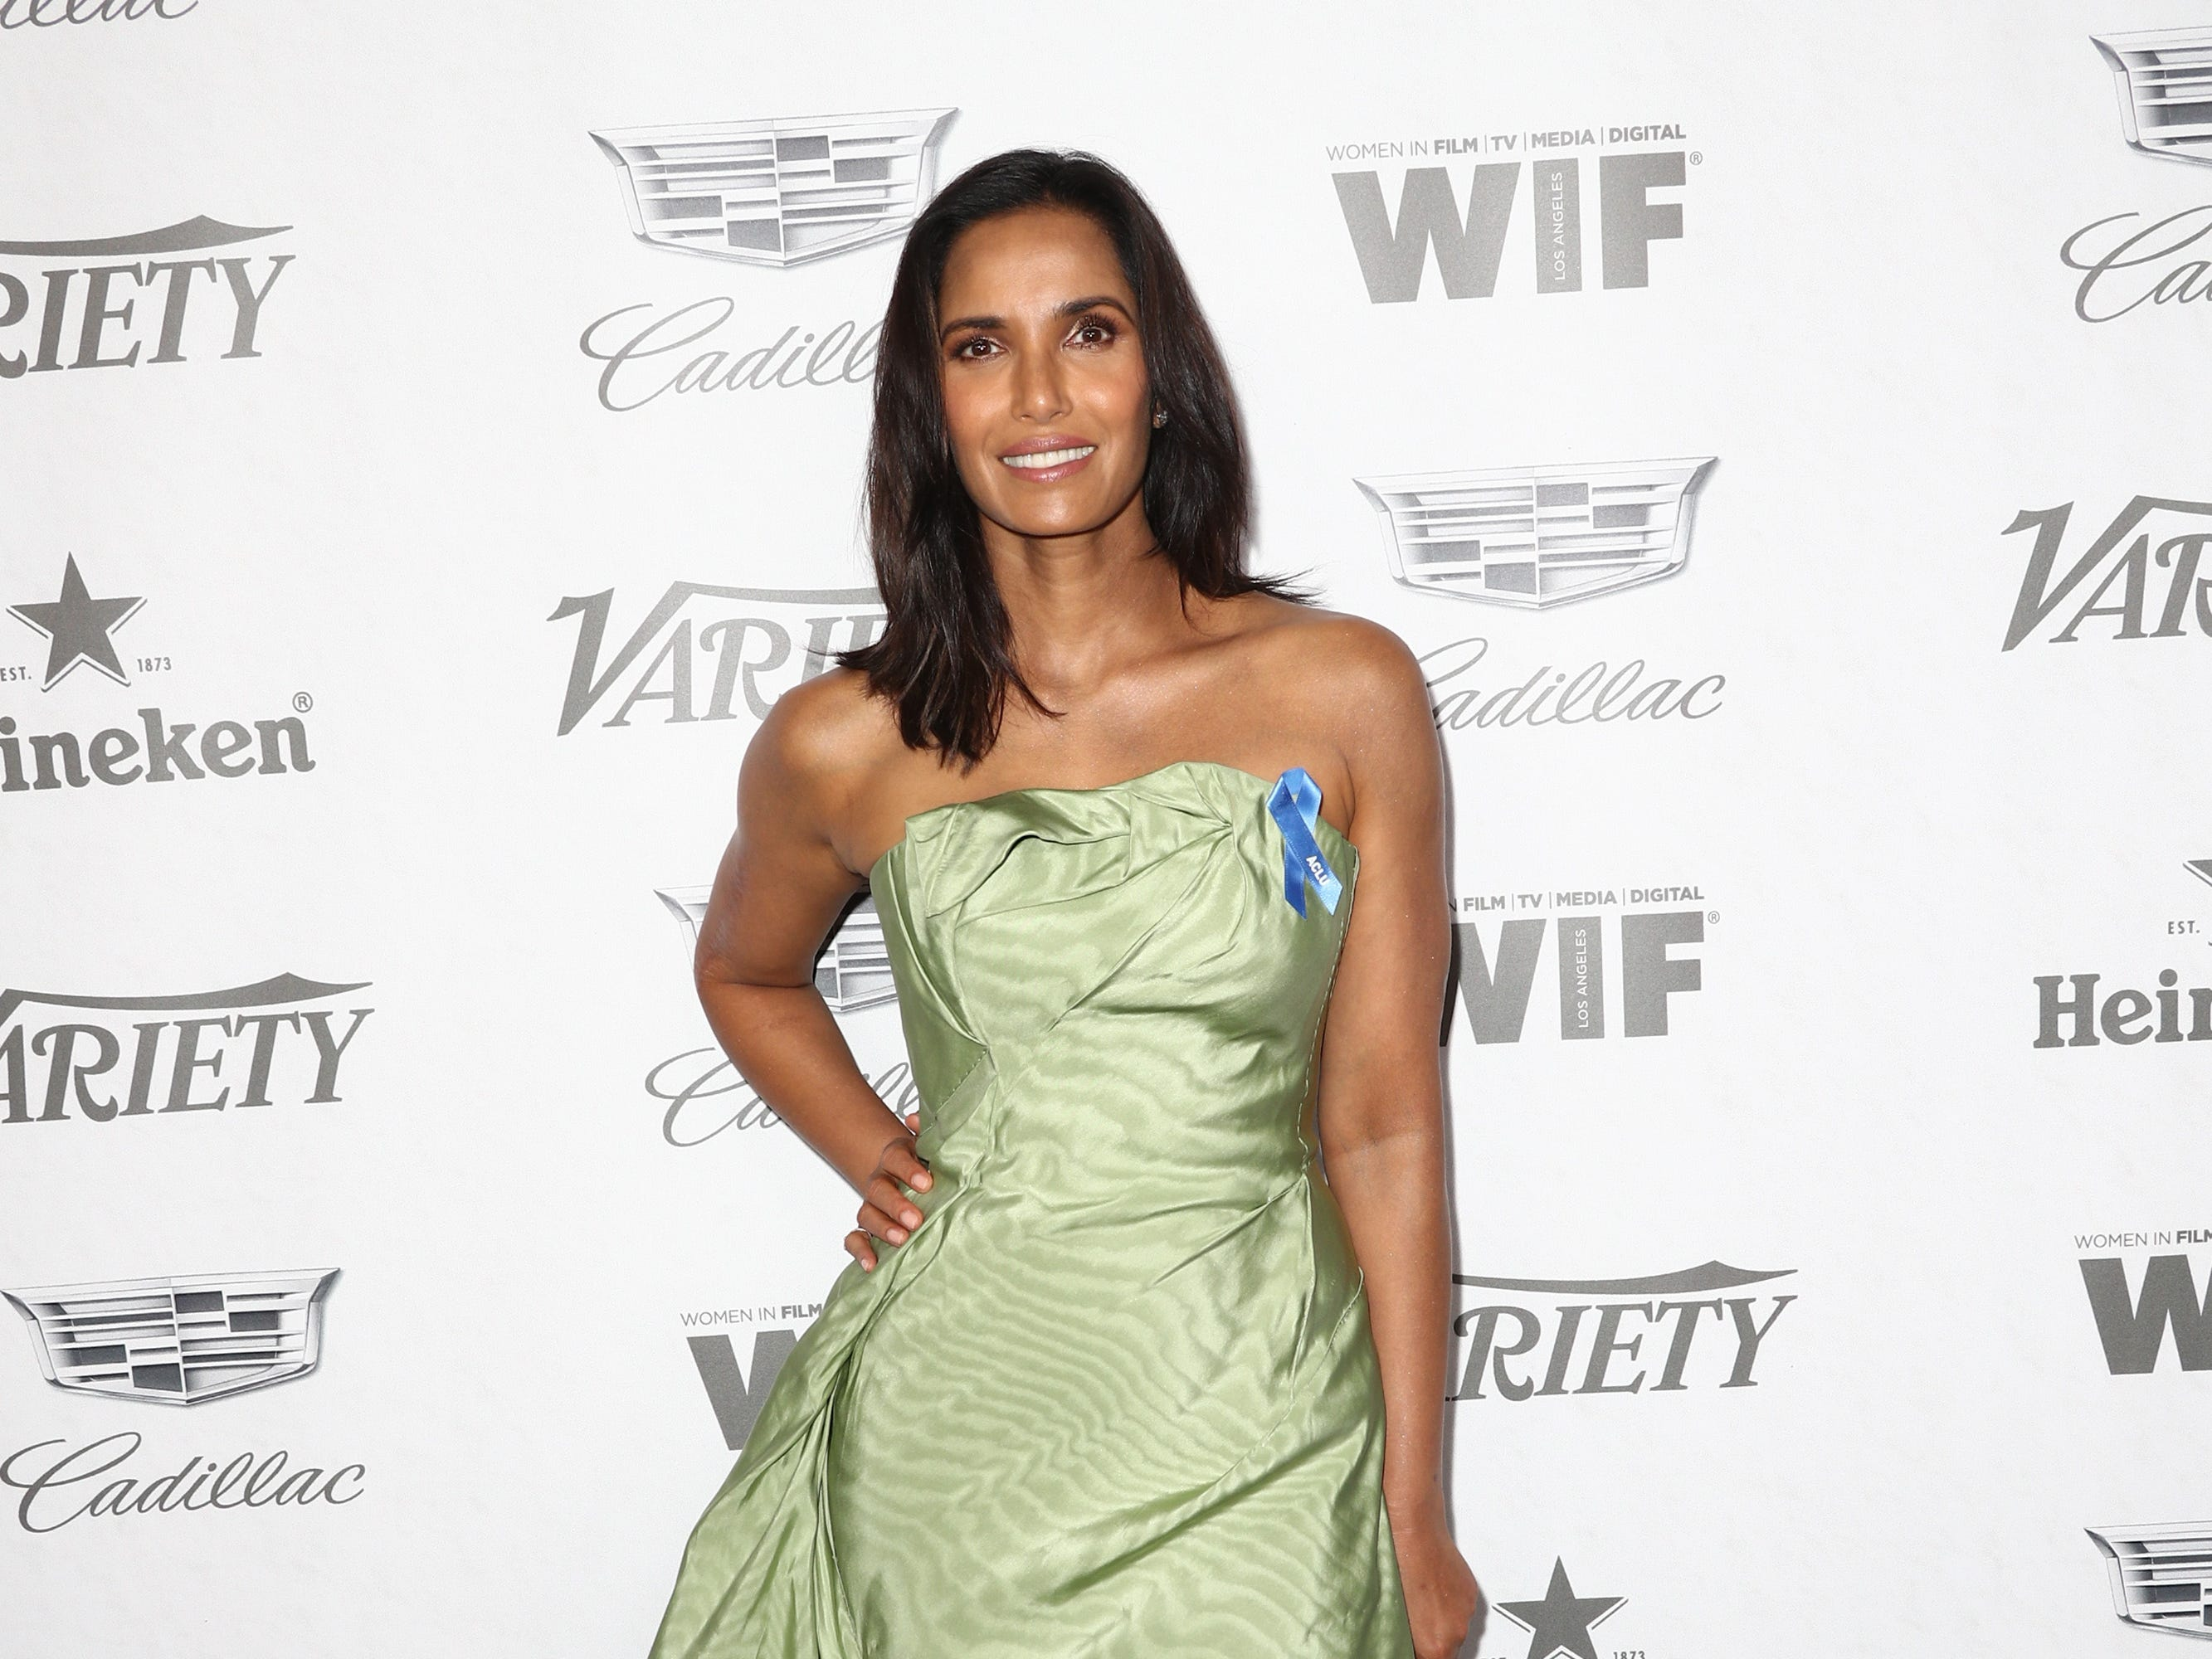 WEST HOLLYWOOD, CA - SEPTEMBER 15:  Padma Lakshmi attends Variety and Women in Film's 2018 Pre-Emmy Celebration at Cecconi's on September 15, 2018 in West Hollywood, California.  (Photo by Frederick M. Brown/Getty Images) ORG XMIT: 775218358 ORIG FILE ID: 1033997172